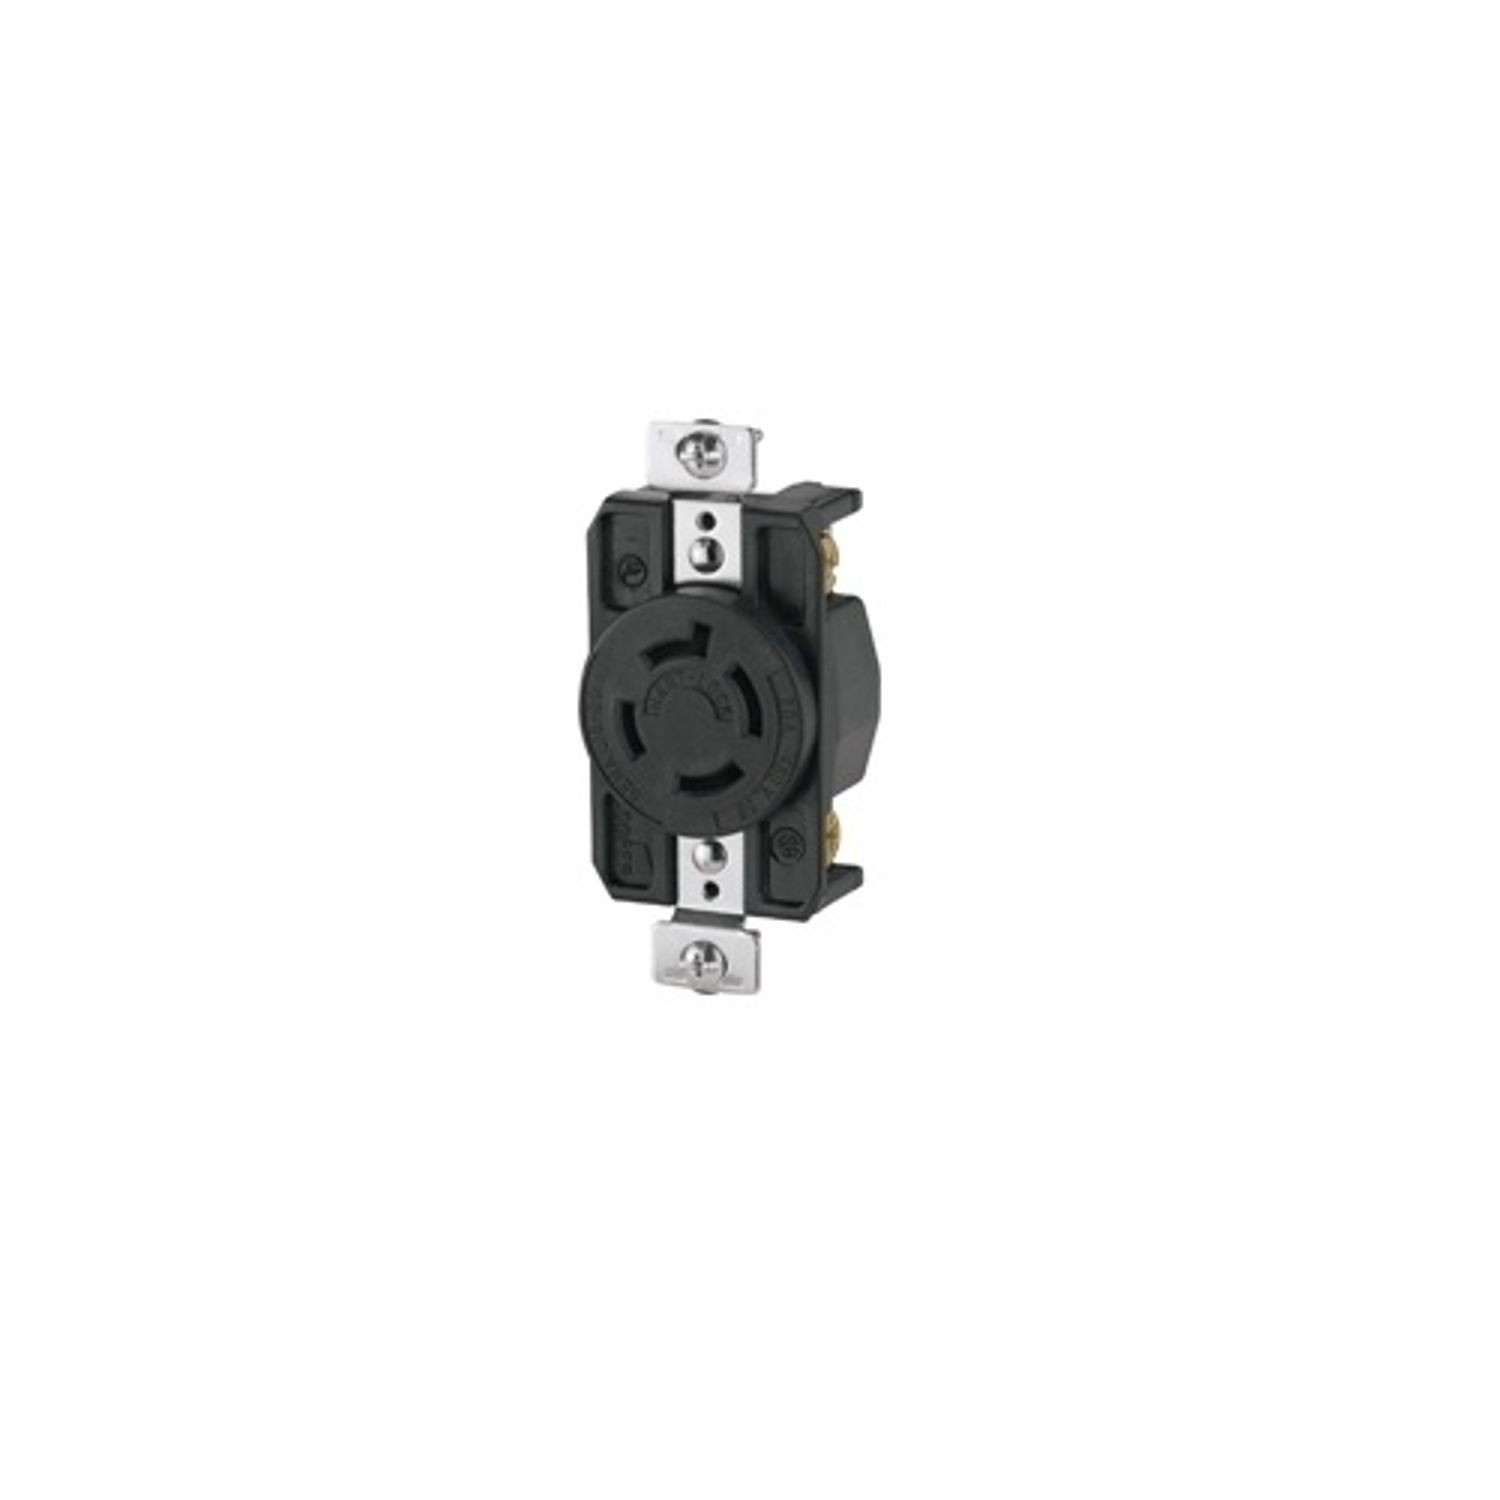 hight resolution of cooper wiring arrow hart ahl1620r locking single receptacle 480 vac 20 a 3 poles 4 wires black